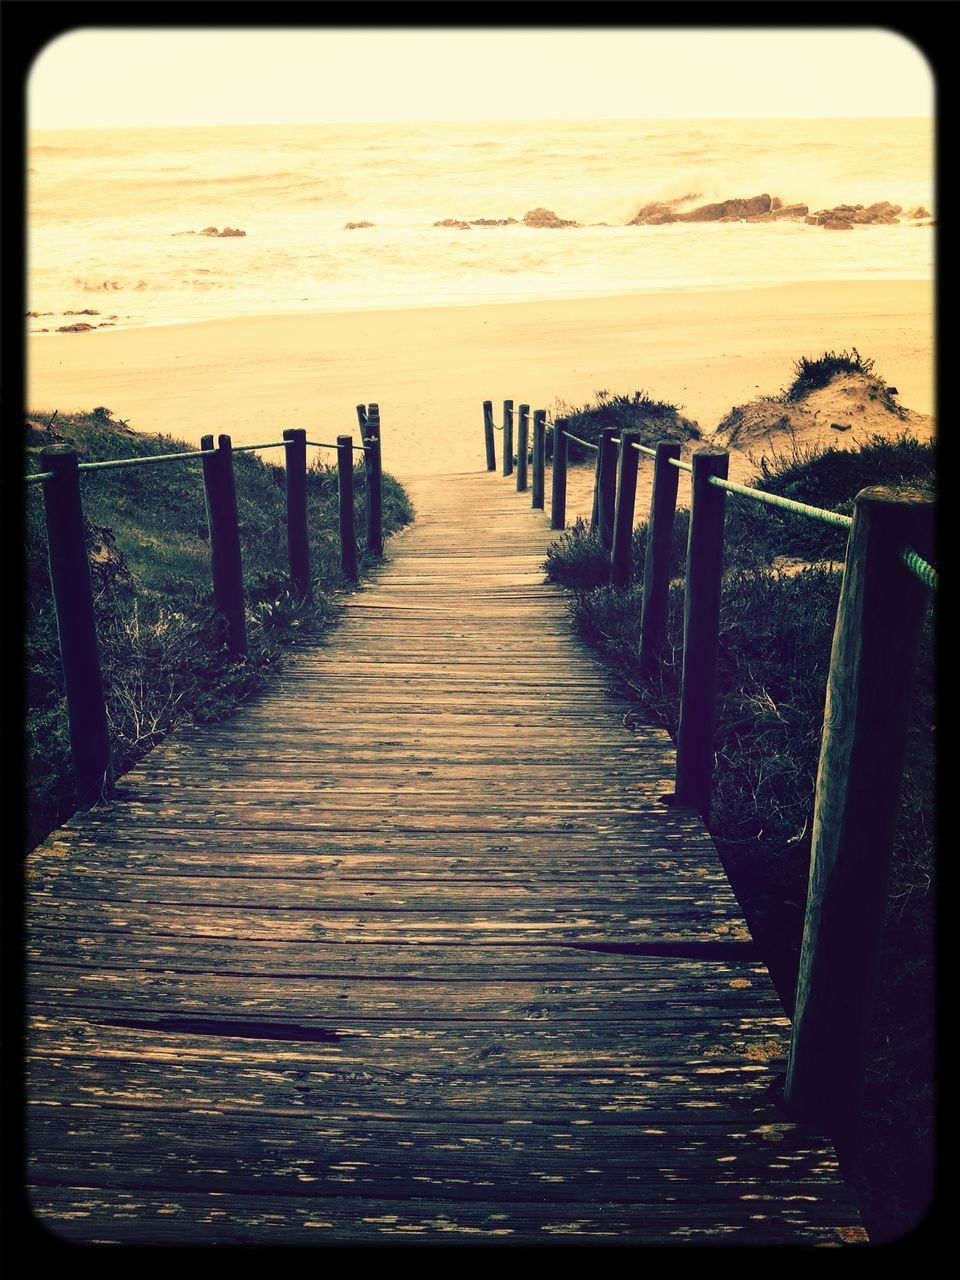 sea, pier, wood - material, beach, sunset, horizon over water, wooden post, outdoors, nature, water, scenics, no people, day, sky, wood paneling, grass, beauty in nature